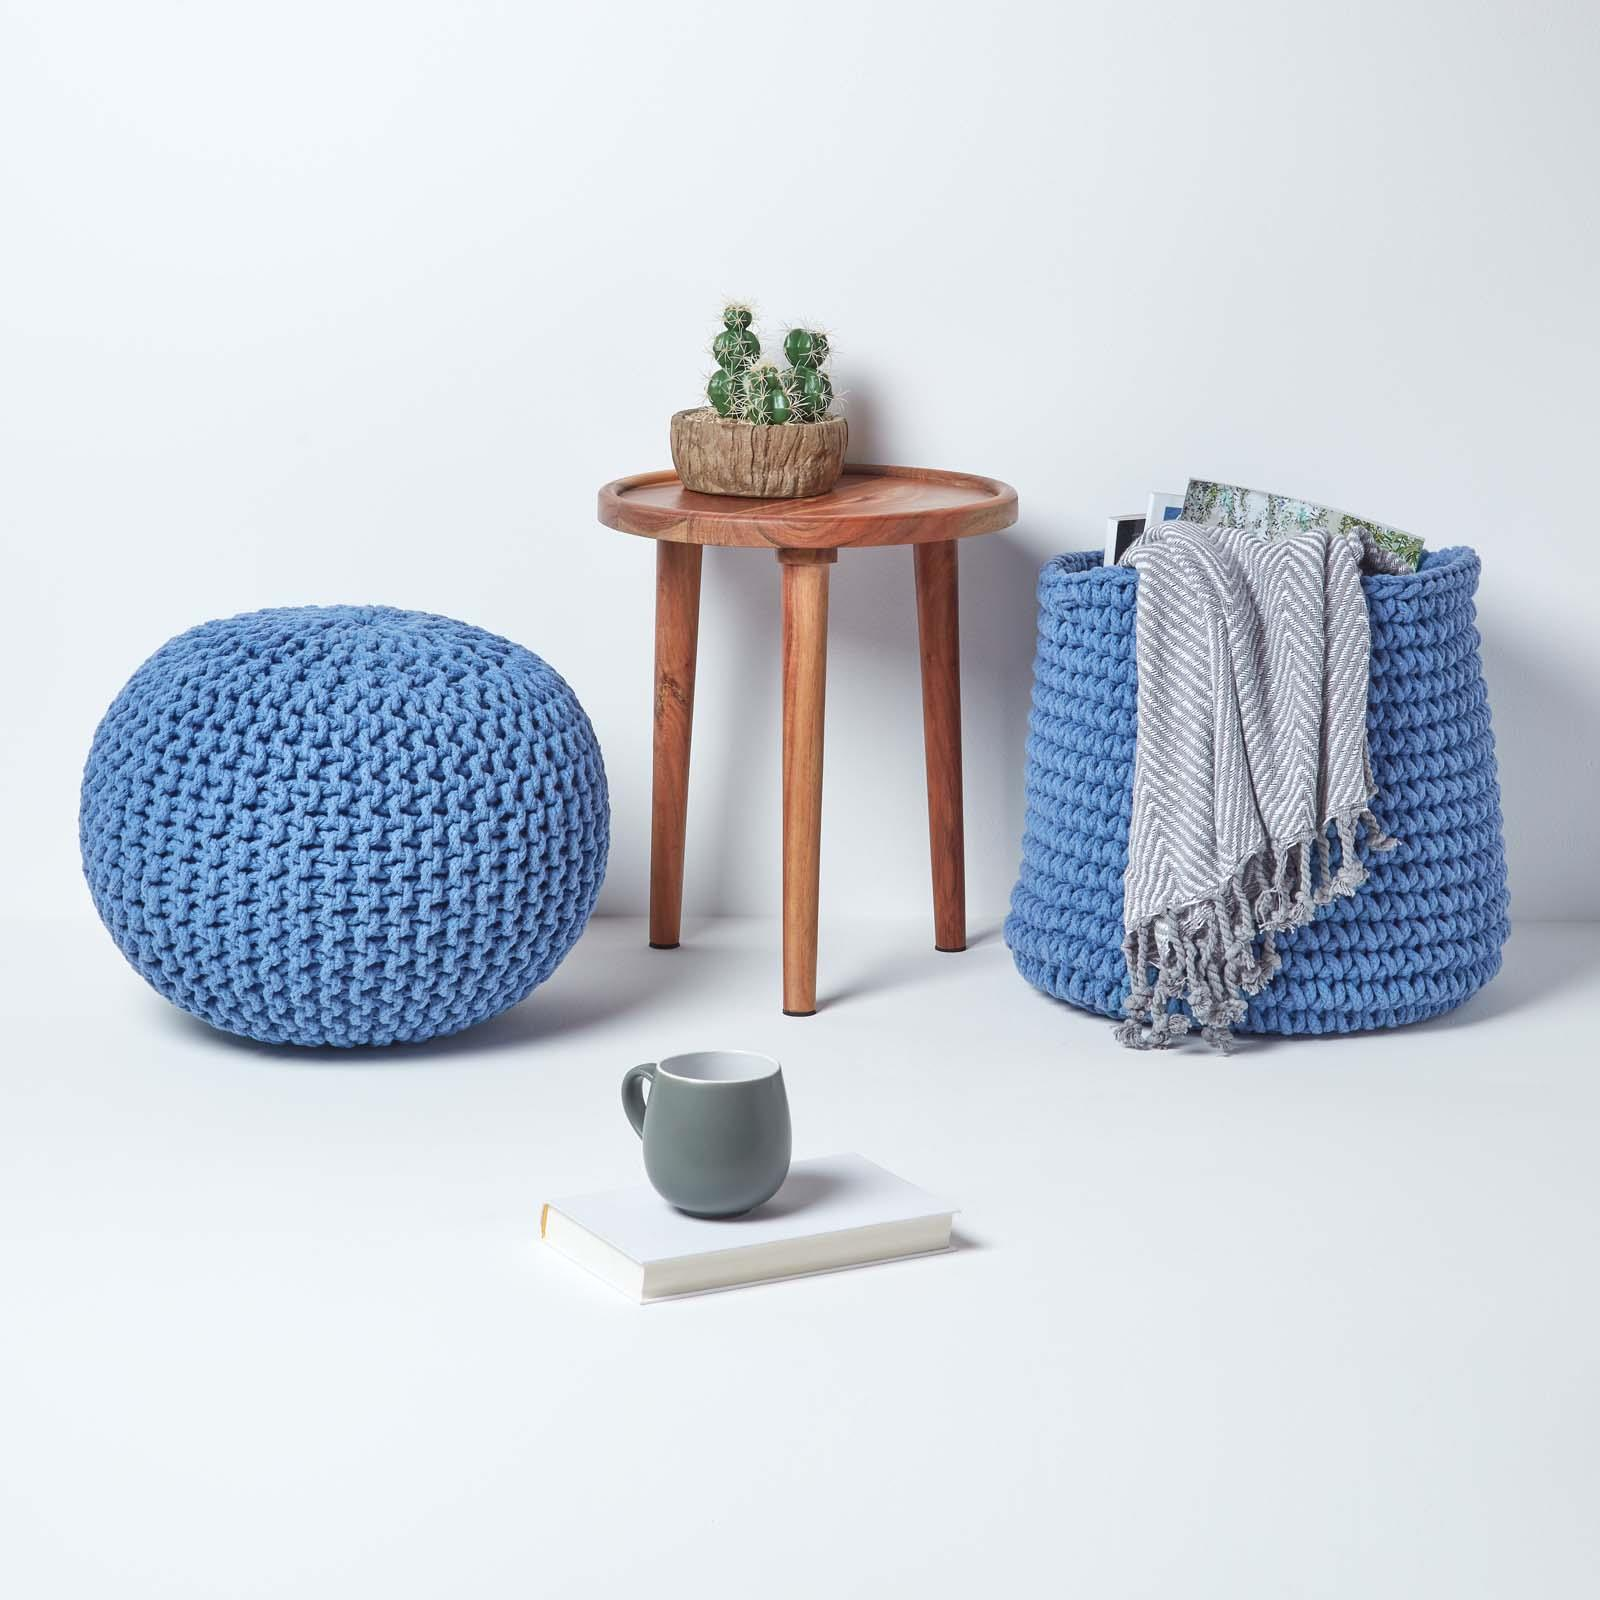 Hand-Knitted-100-Cotton-Pouffes-Round-Sphere-Or-Cube-Square-Chunky-Footstools thumbnail 21